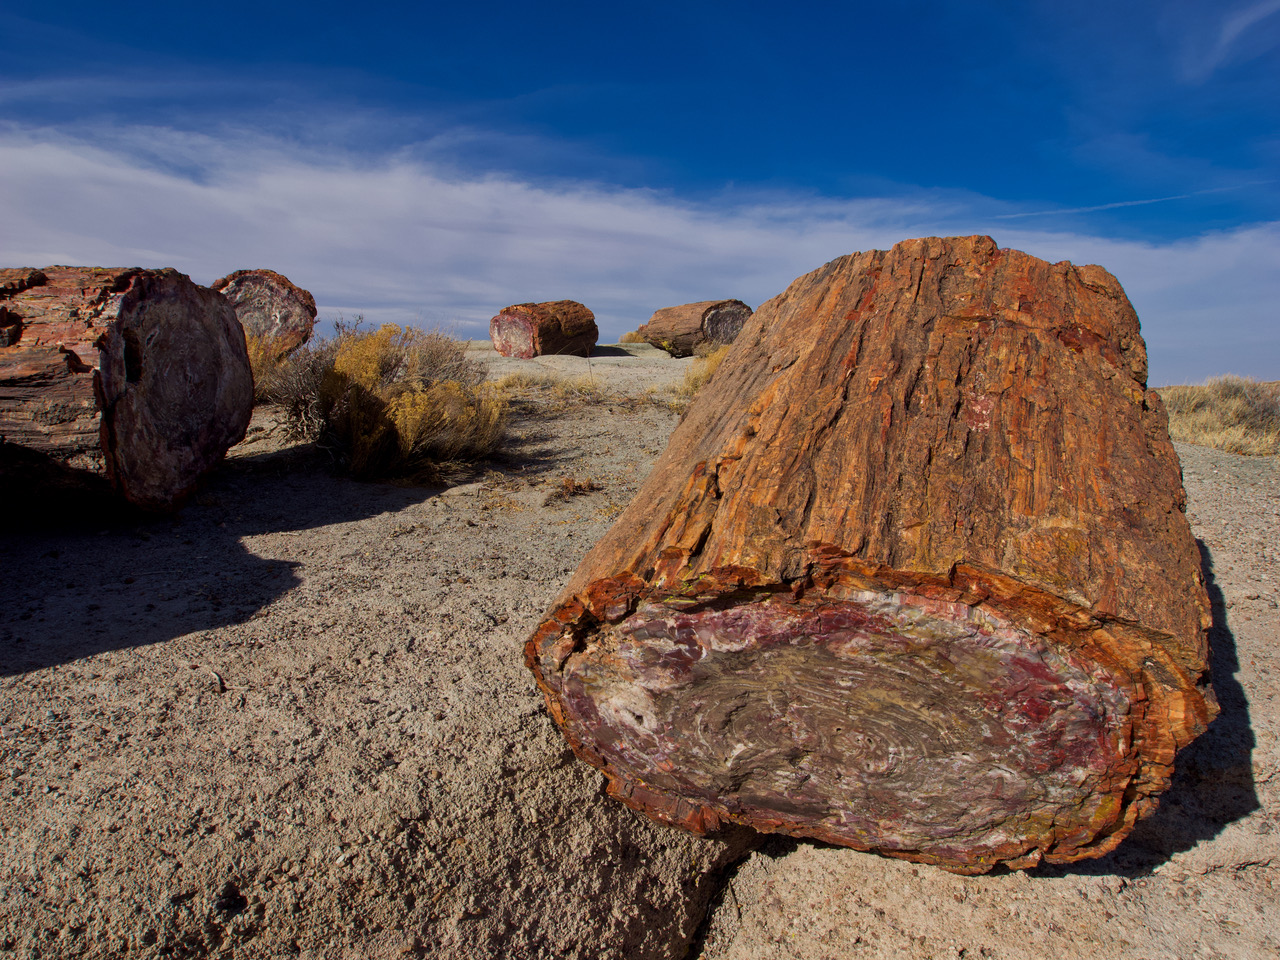 pf8-PB270392 Petrified Forest.jpg